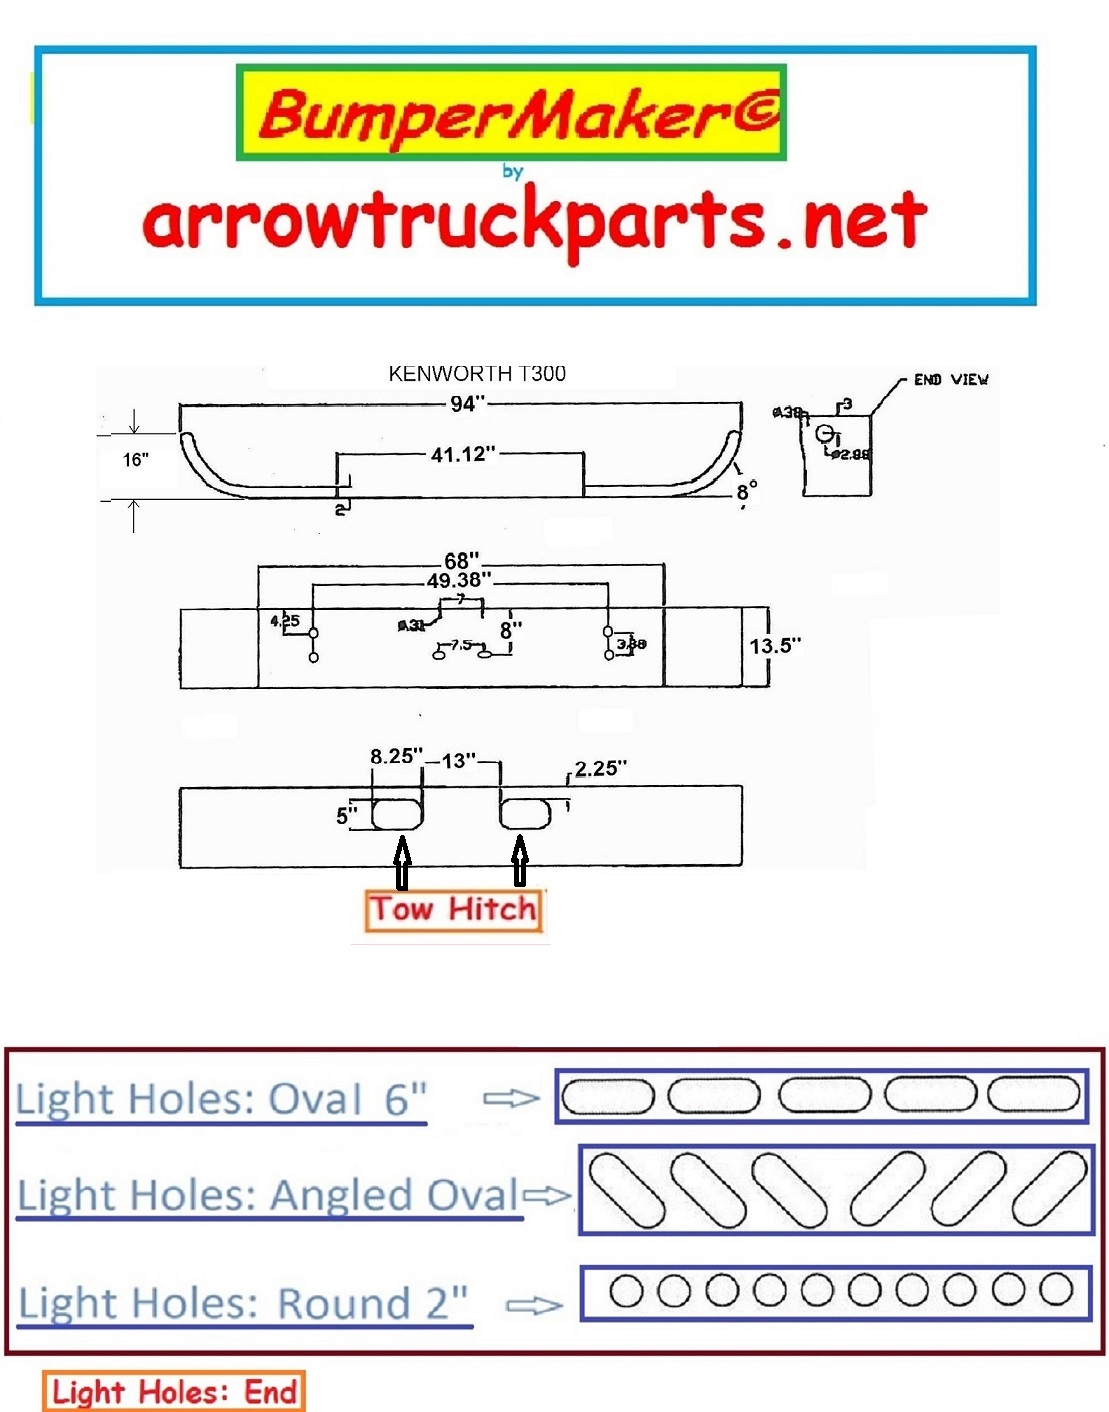 Crane ignition wiring diagram t300 kenworth product wiring diagrams luxury kenworth t300 wiring diagram sketch electrical diagram rh piotomar info kenworth hvac wiring 2013 kenworth headlight wiring asfbconference2016 Image collections